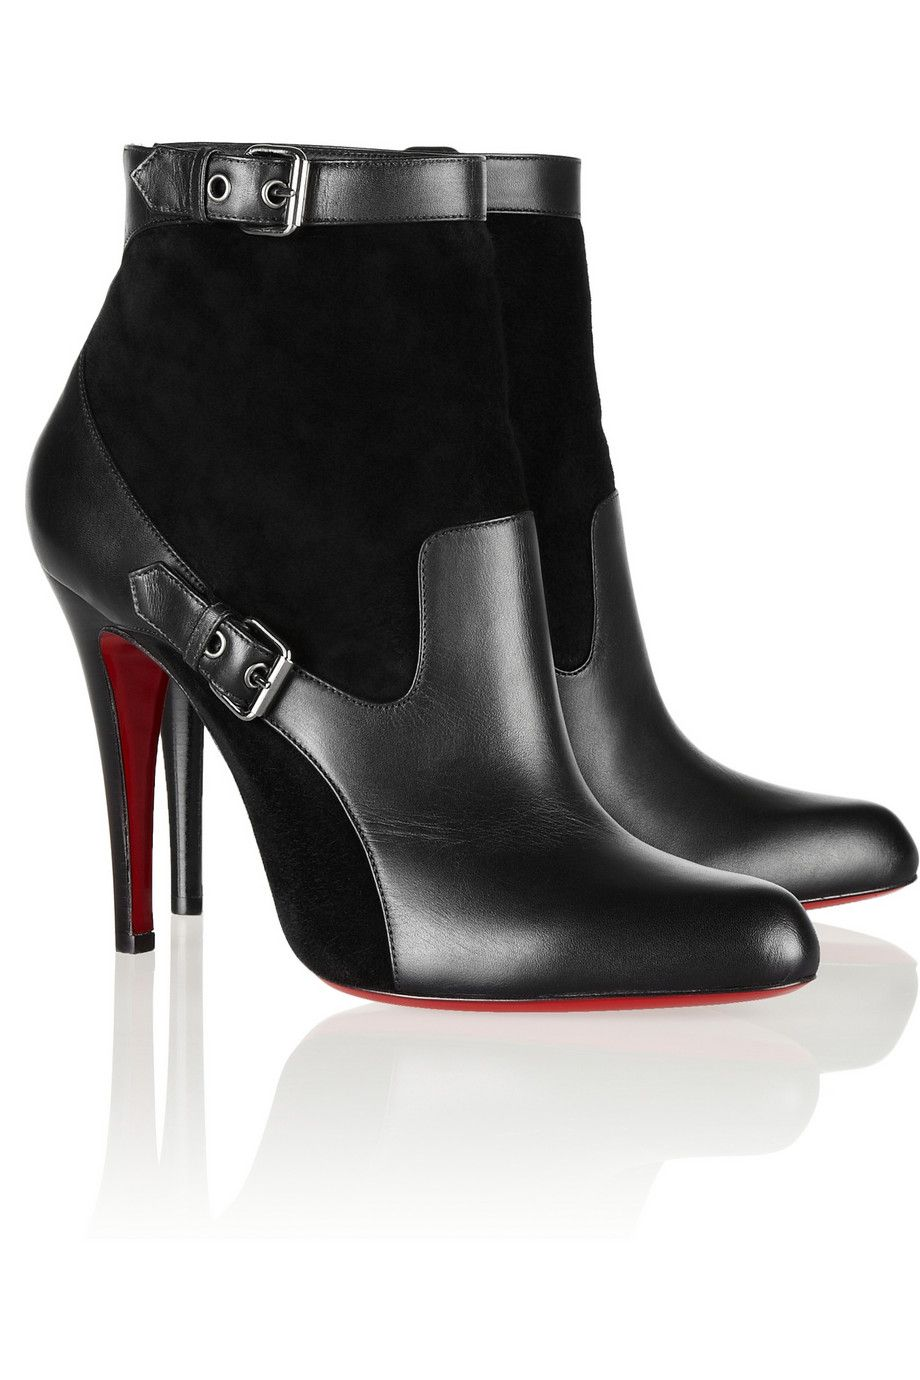 Christian louboutin Canassone 100 Buckled Suede And Leather Ankle Boots in Black | Lyst